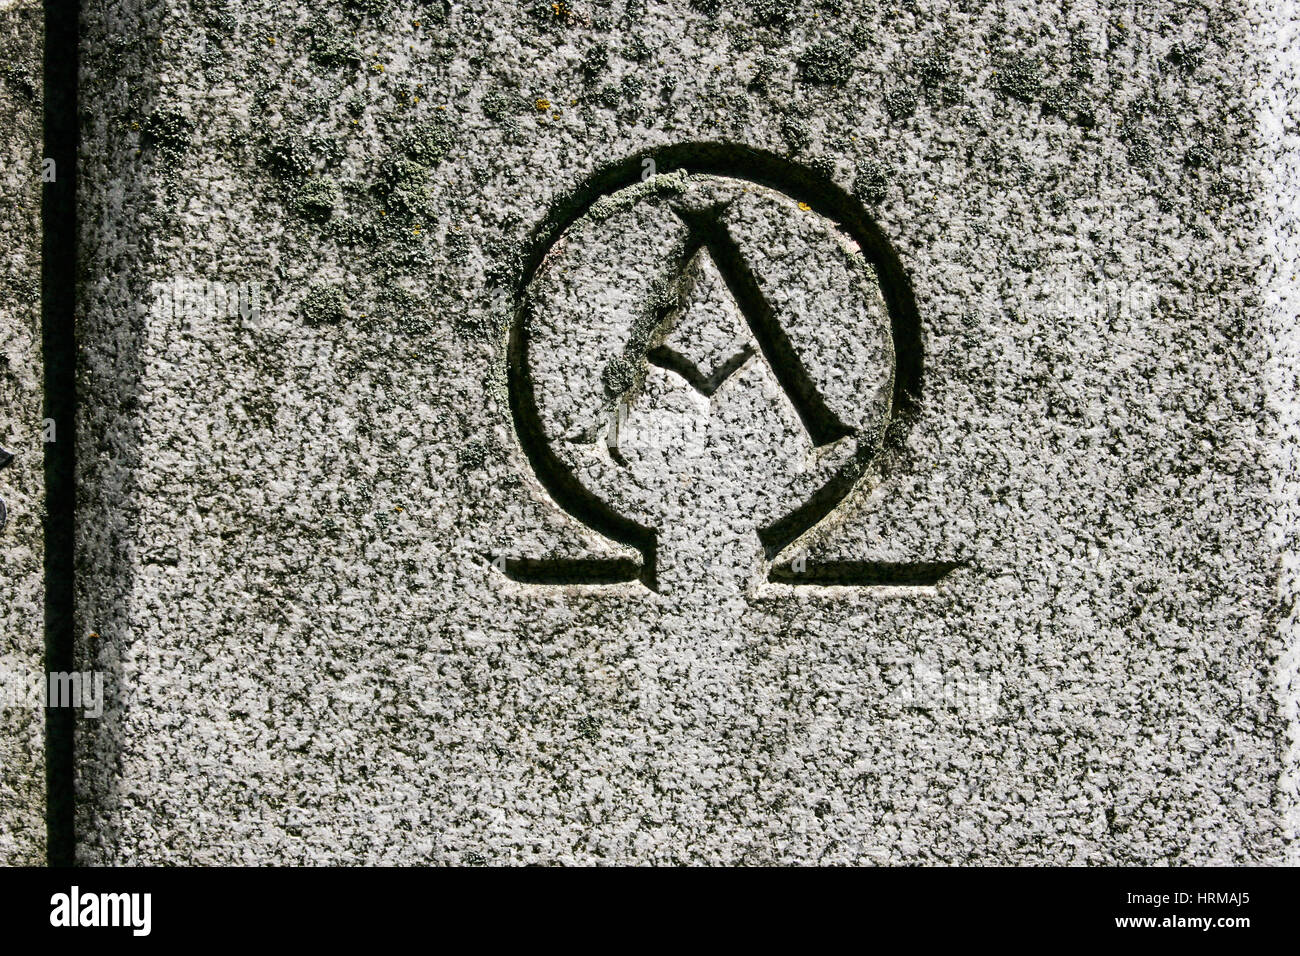 Alpha omega symbol stock photos alpha omega symbol stock images alpha omega symbol carved in grey granite stone stock image buycottarizona